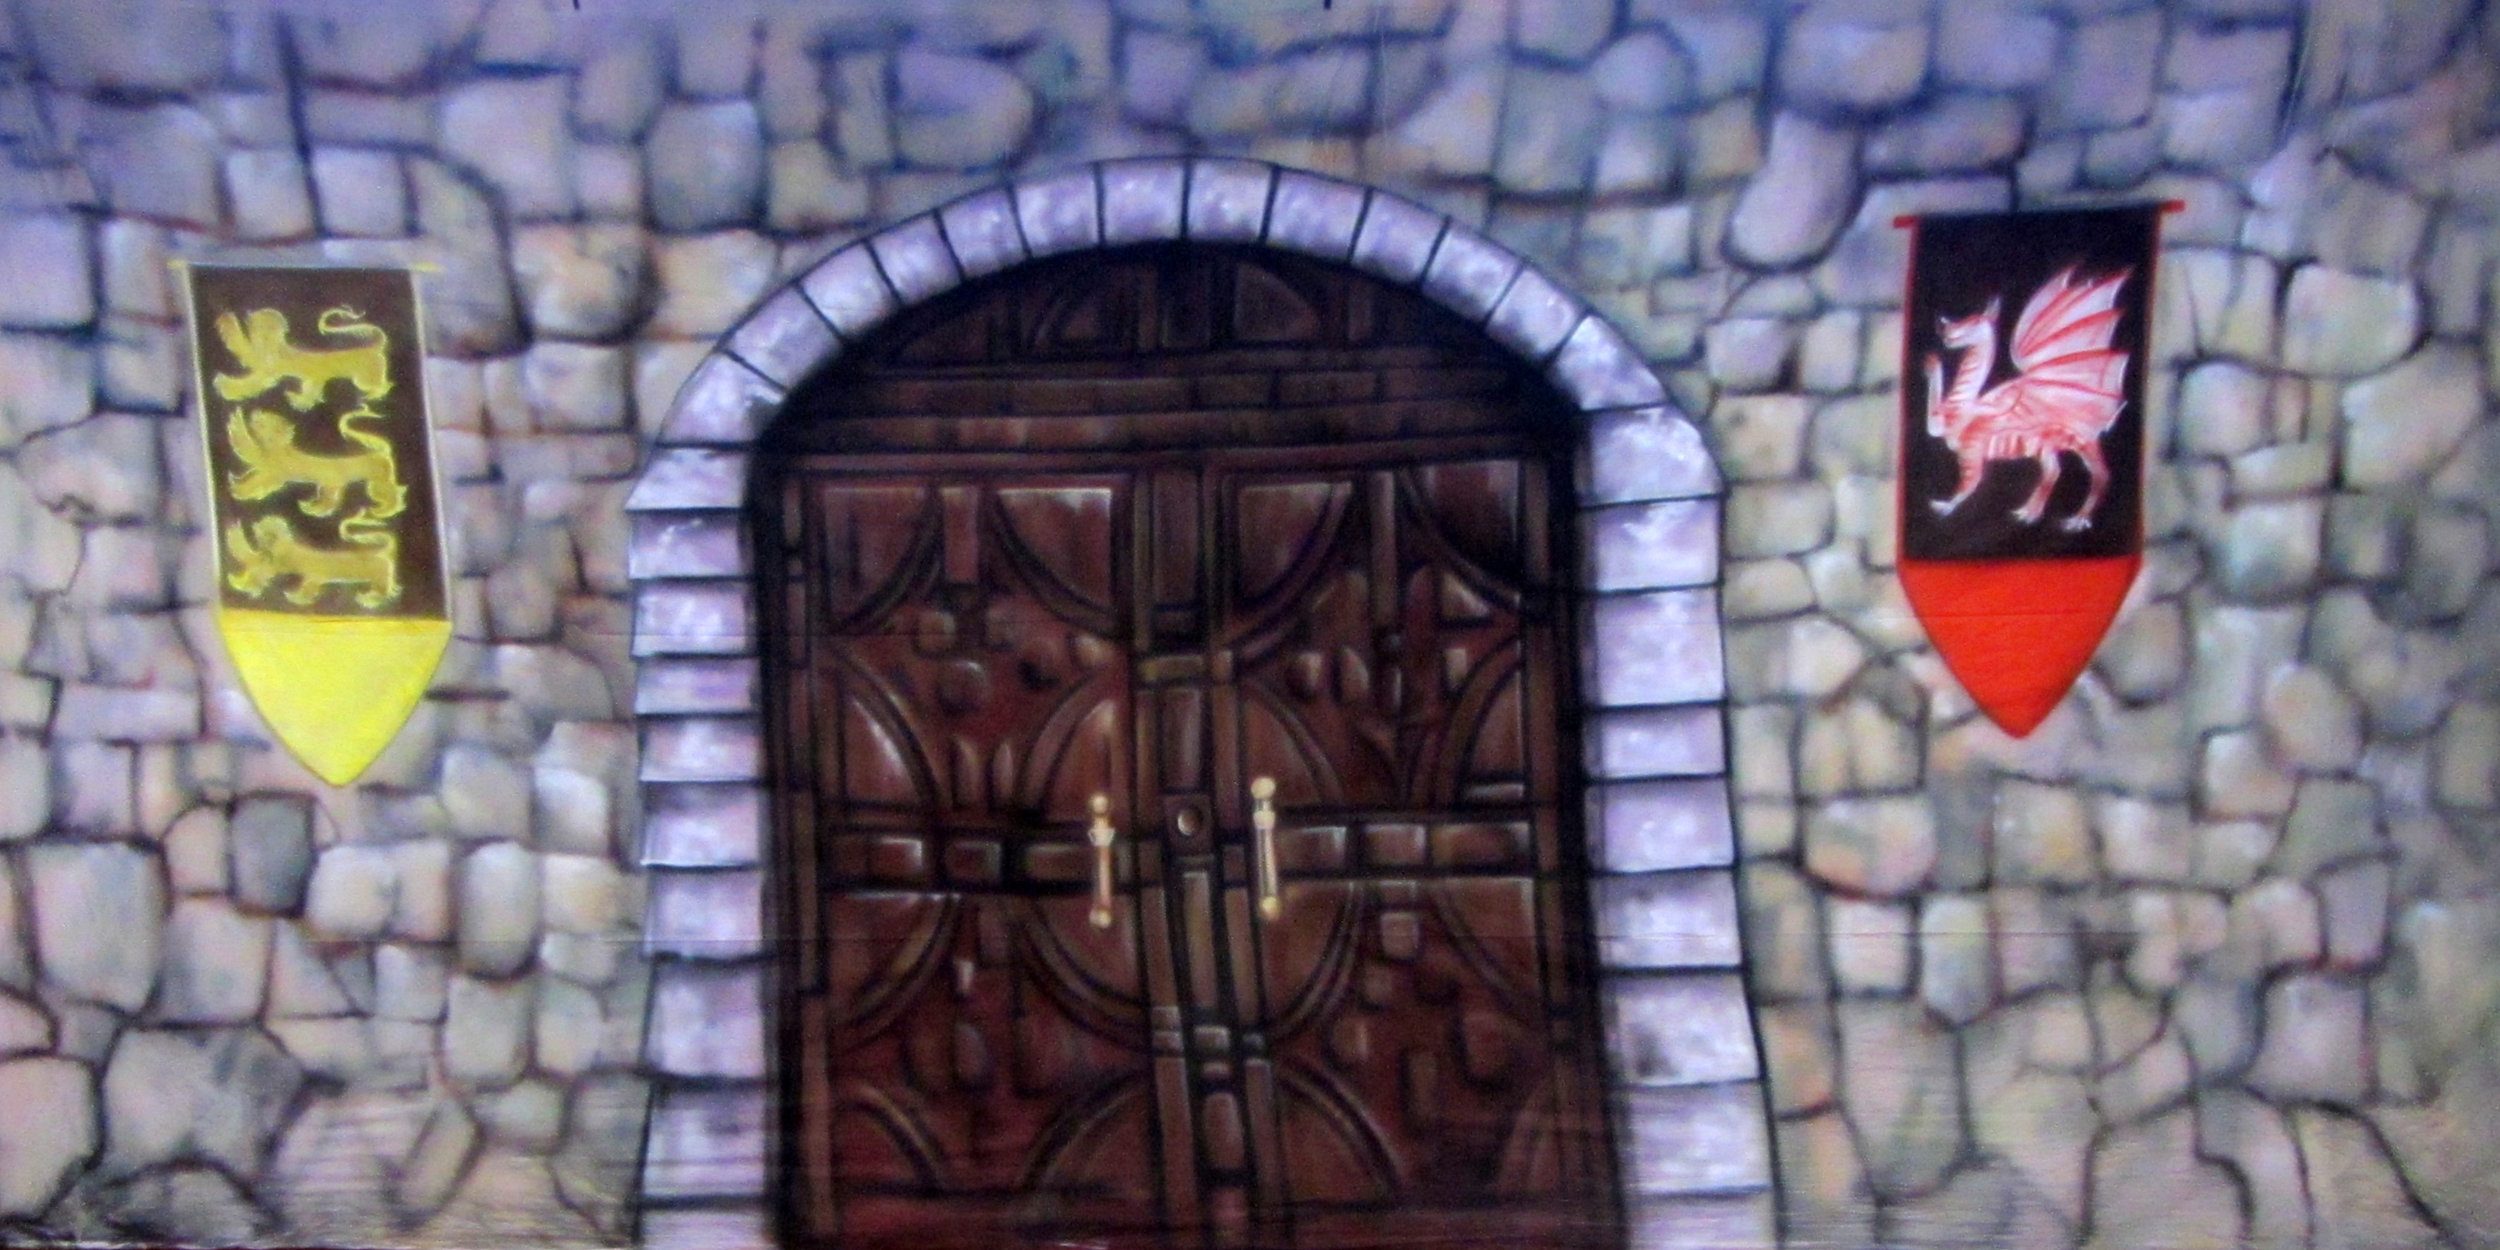 backdrop for hire - medieval - castle wall and door - game of thrones.jpg